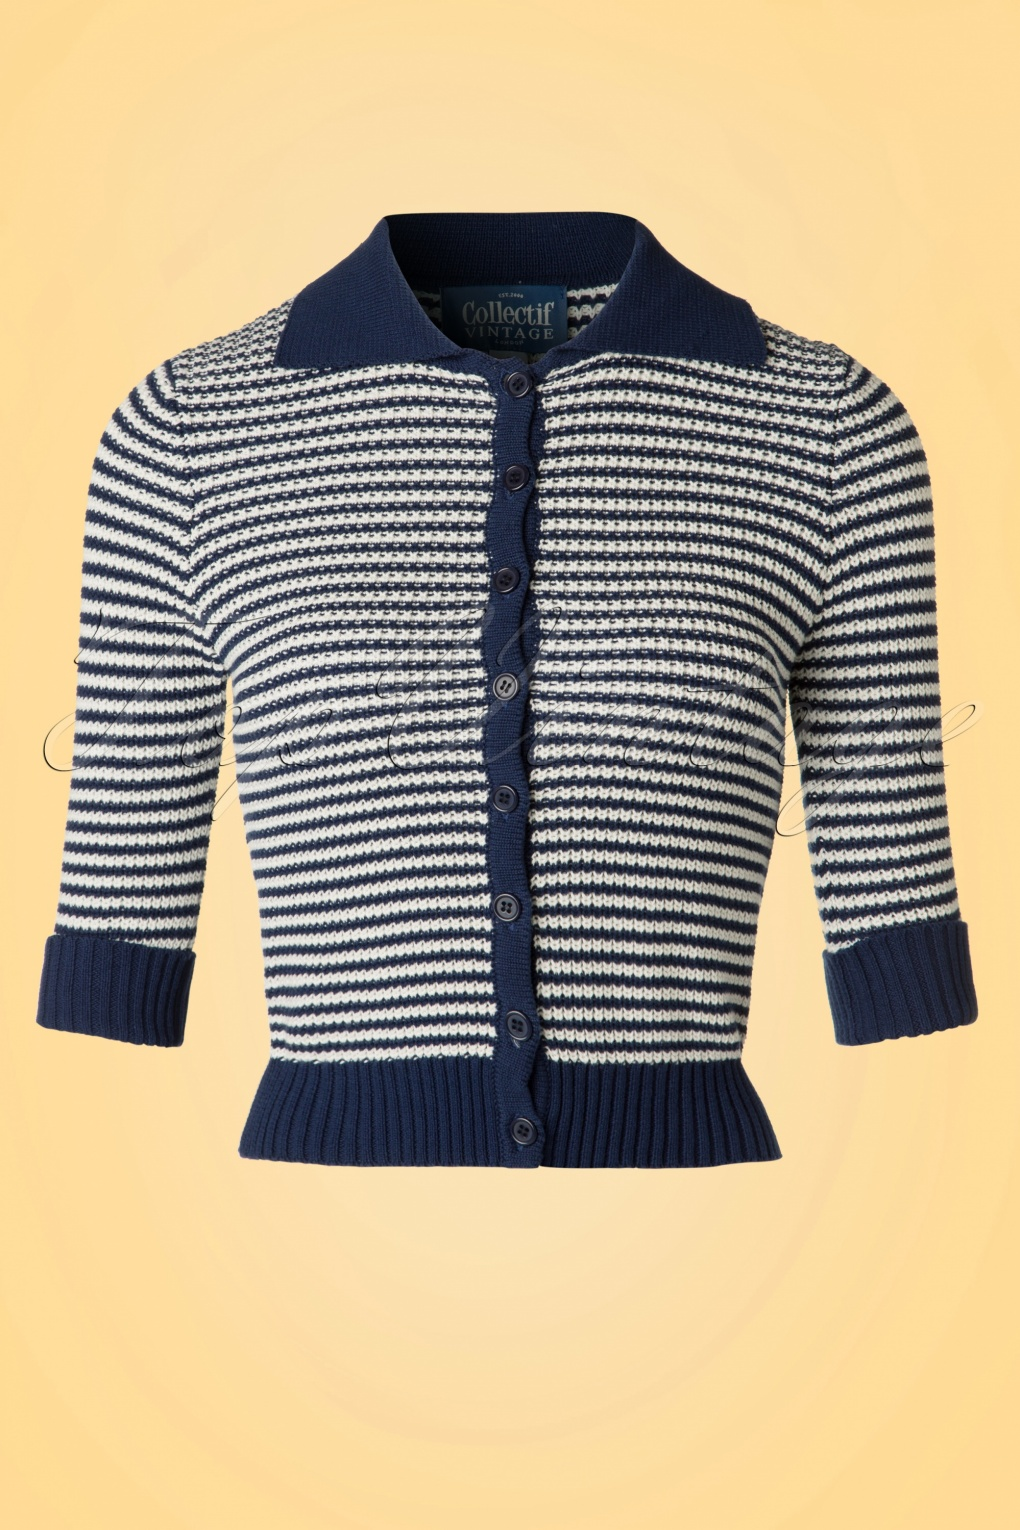 1940s Blouses, Shirts and Tops Fashion History 50s Orchid Striped Cardigan in Navy and Ivory £52.08 AT vintagedancer.com